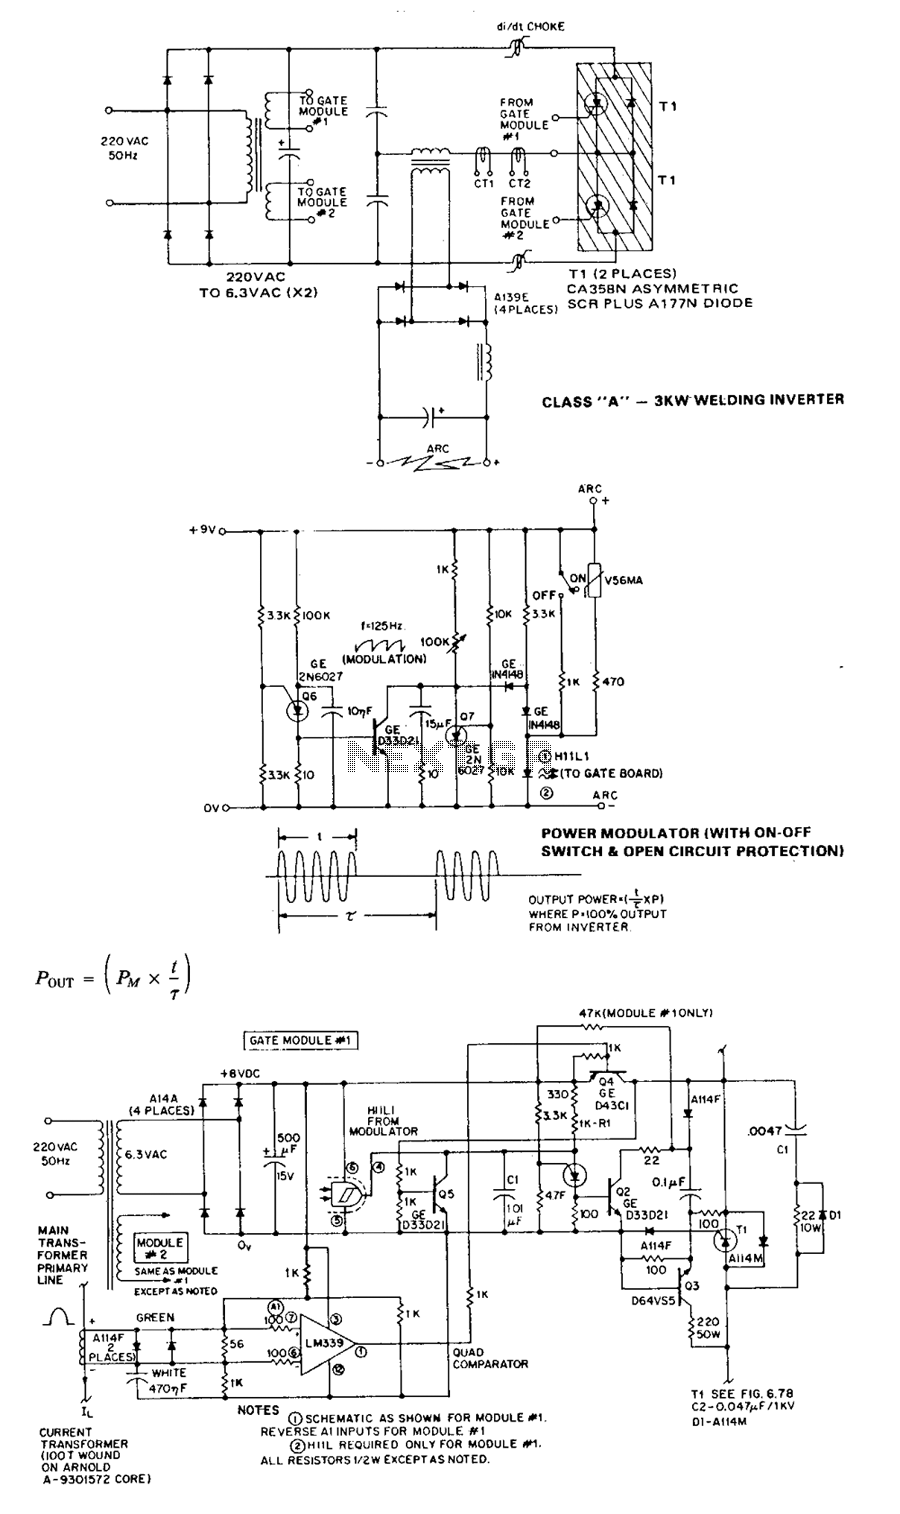 20khz-arc-welding-inverter under ultrasonic circuits